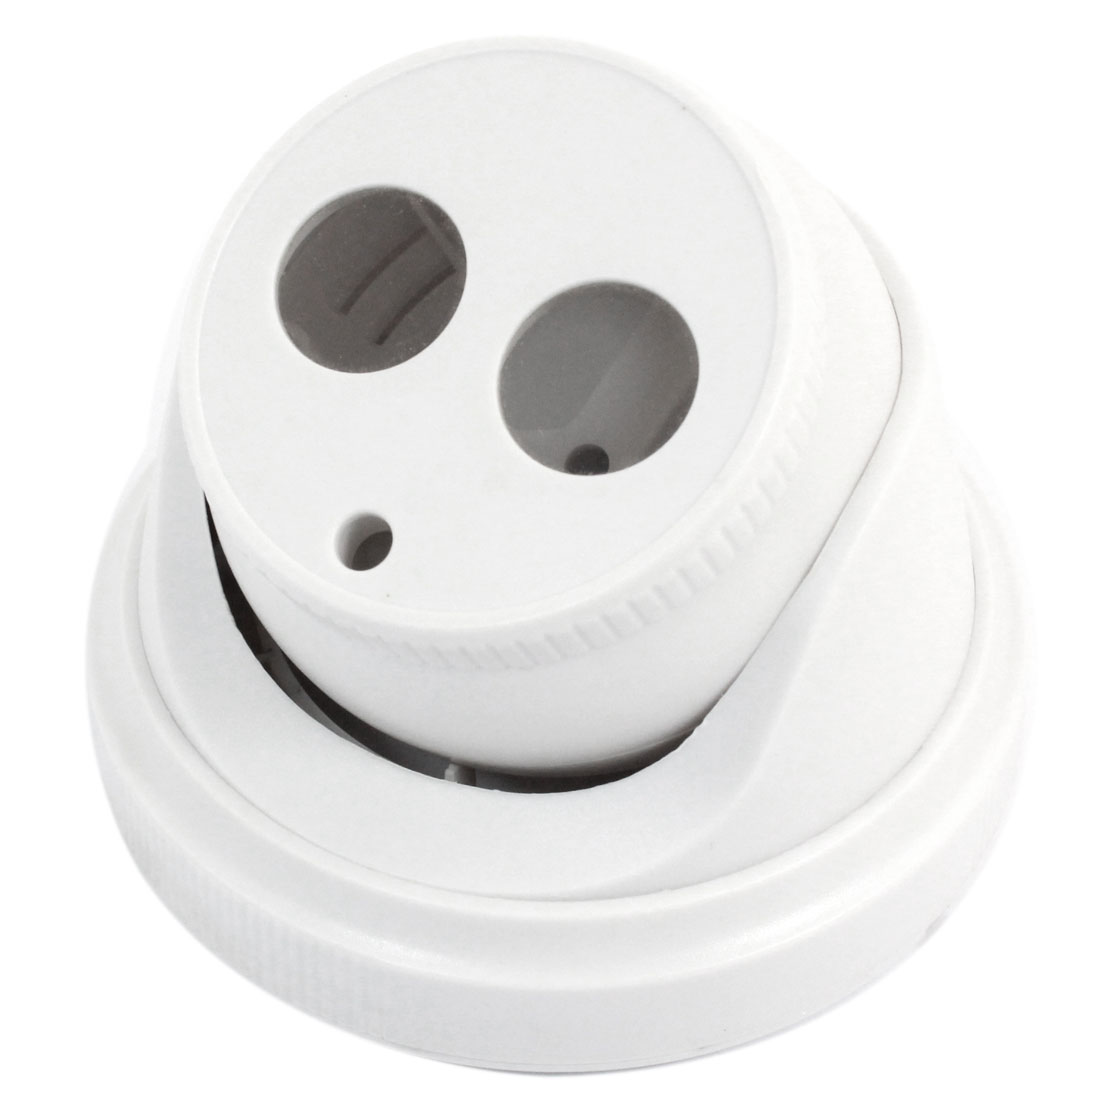 "Surveillance White Plastic CCTV Dome Camera Housing Case 3.1"" High"